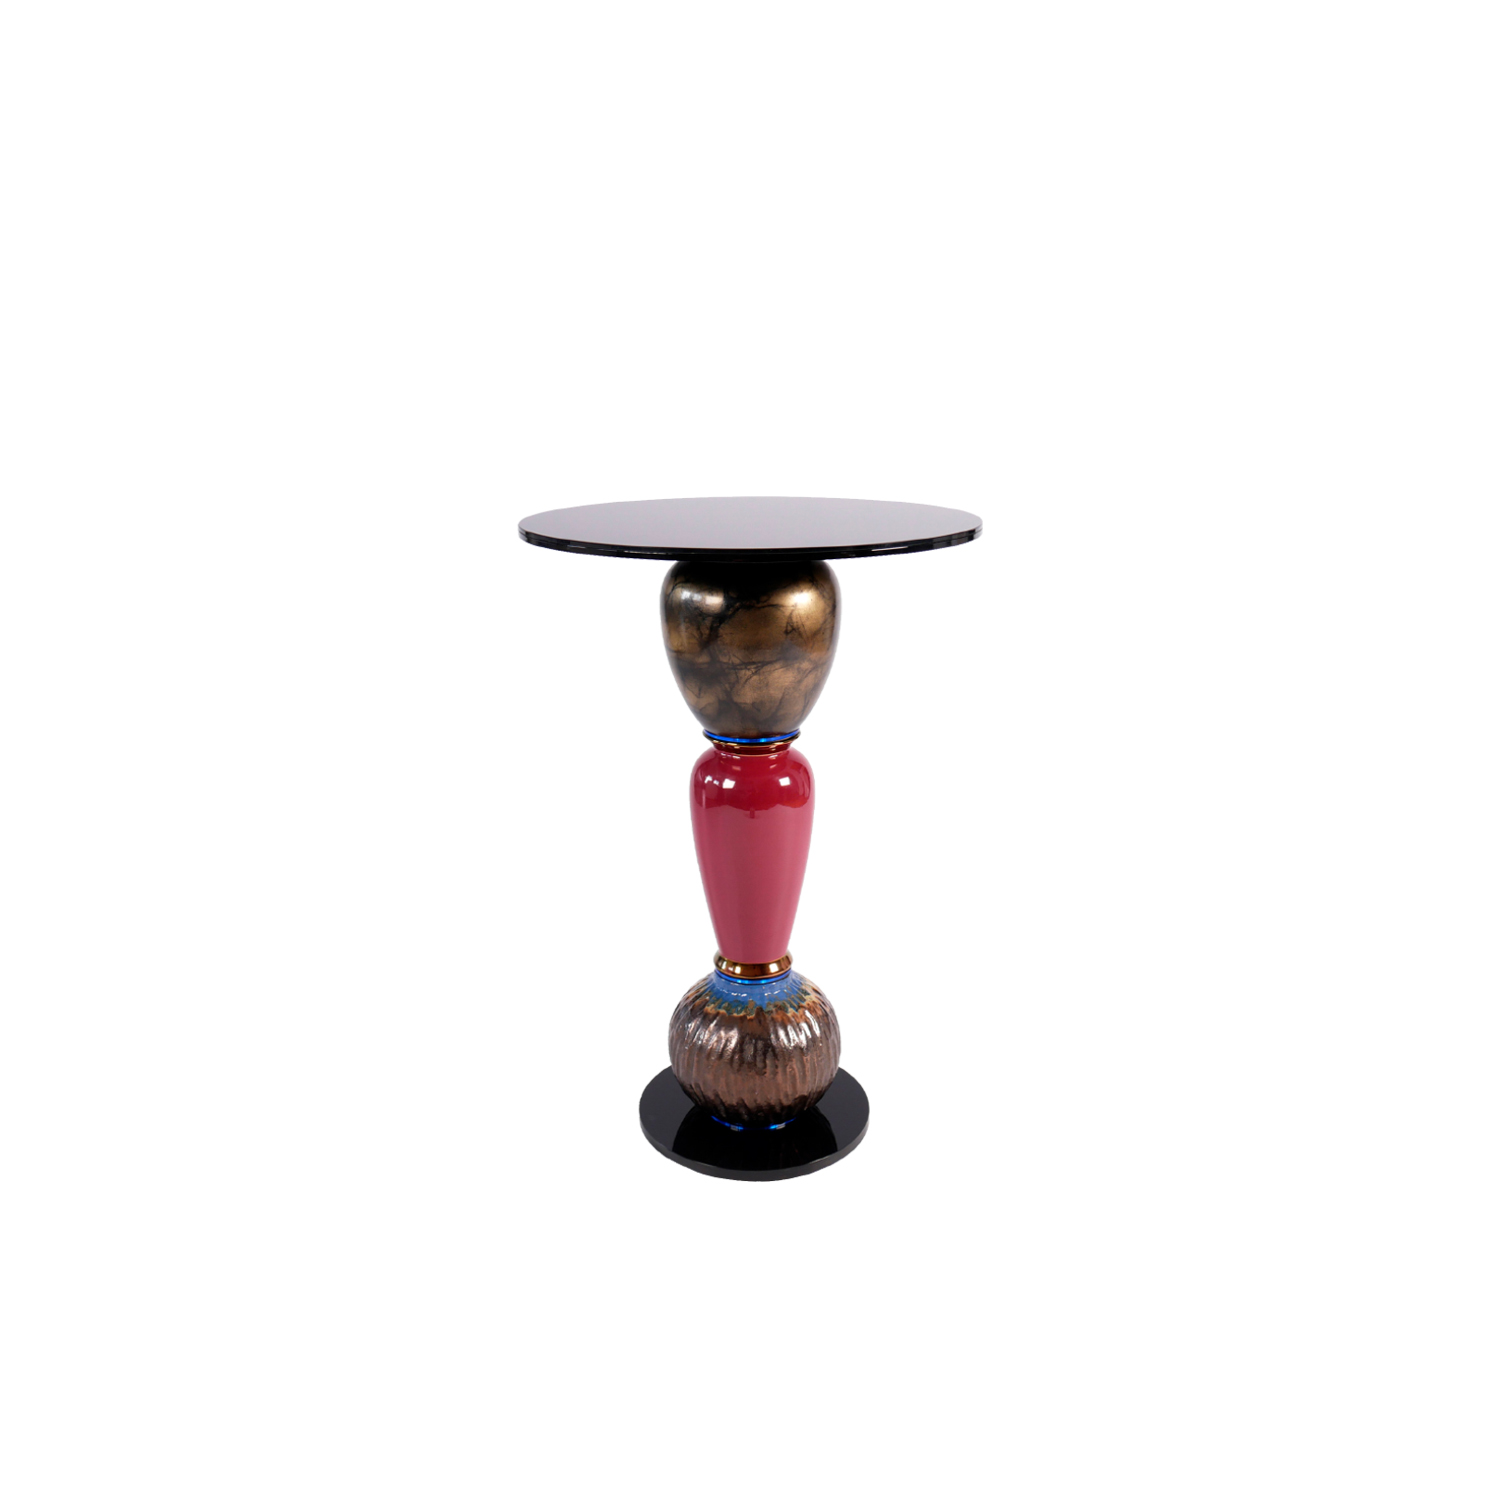 """Shut Your Eyes Side Table - Timeless """"one of a kind"""" side table made of vintage vases and new plexiglass and glass components. Stable construction made of metal and flexible components inside. Additional wight in the base.  